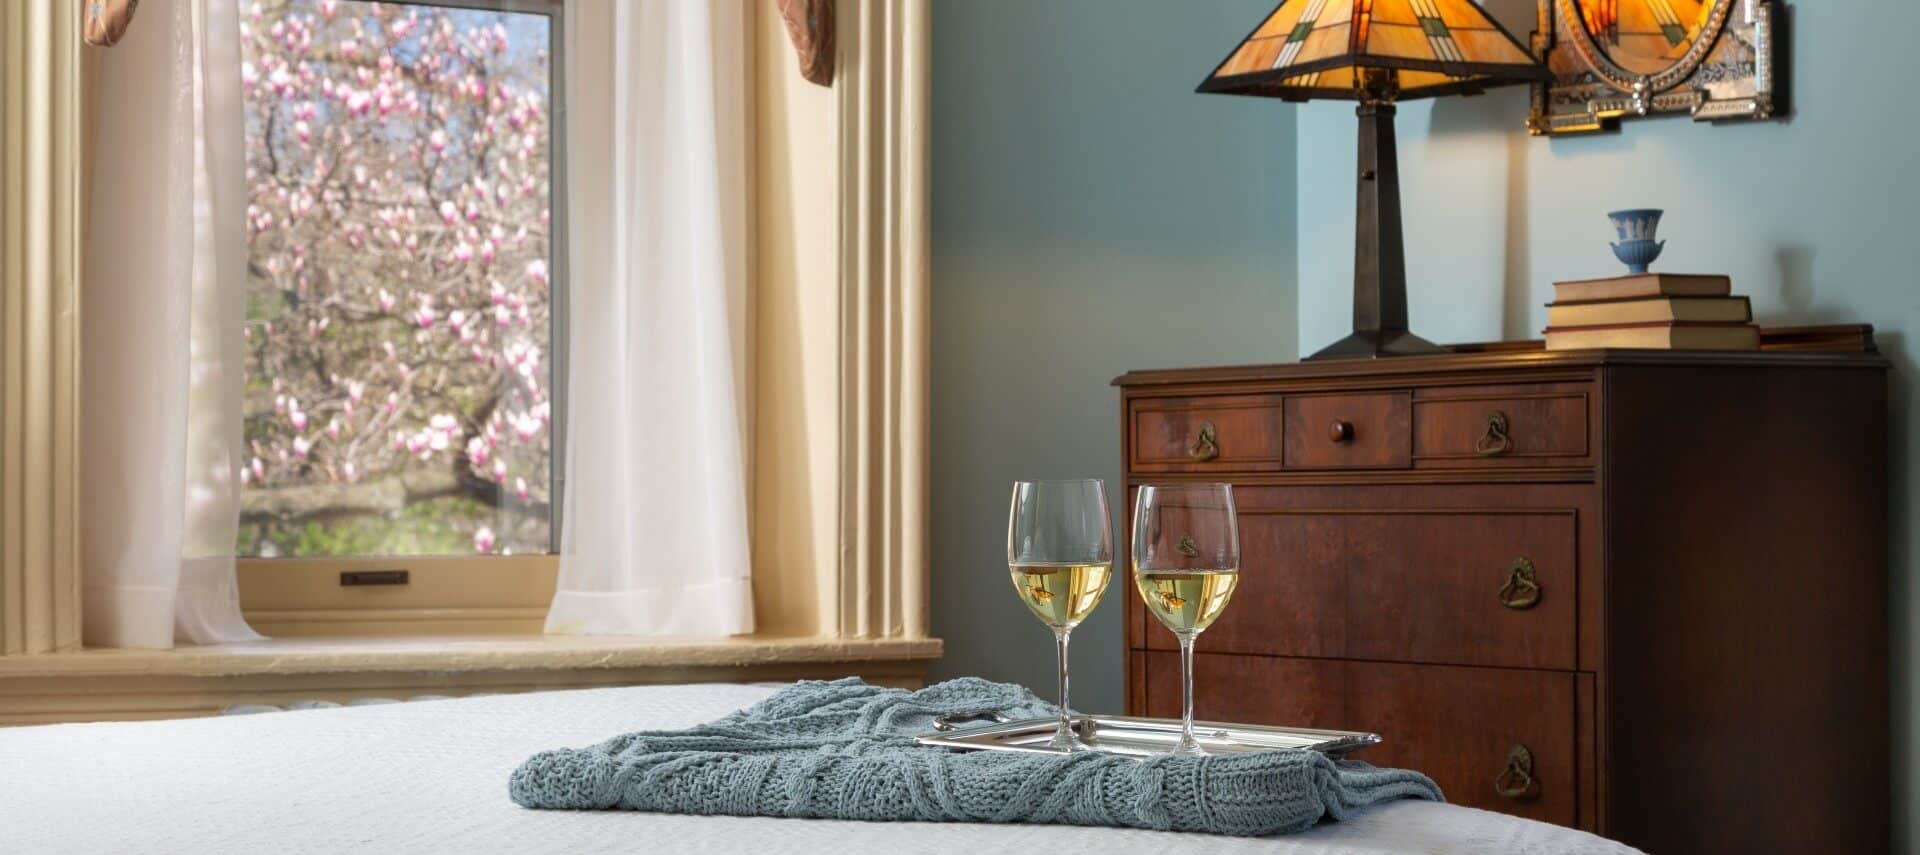 Two glasses of white wine on silver tray sitting on a bed in a room with a window and brown dresser